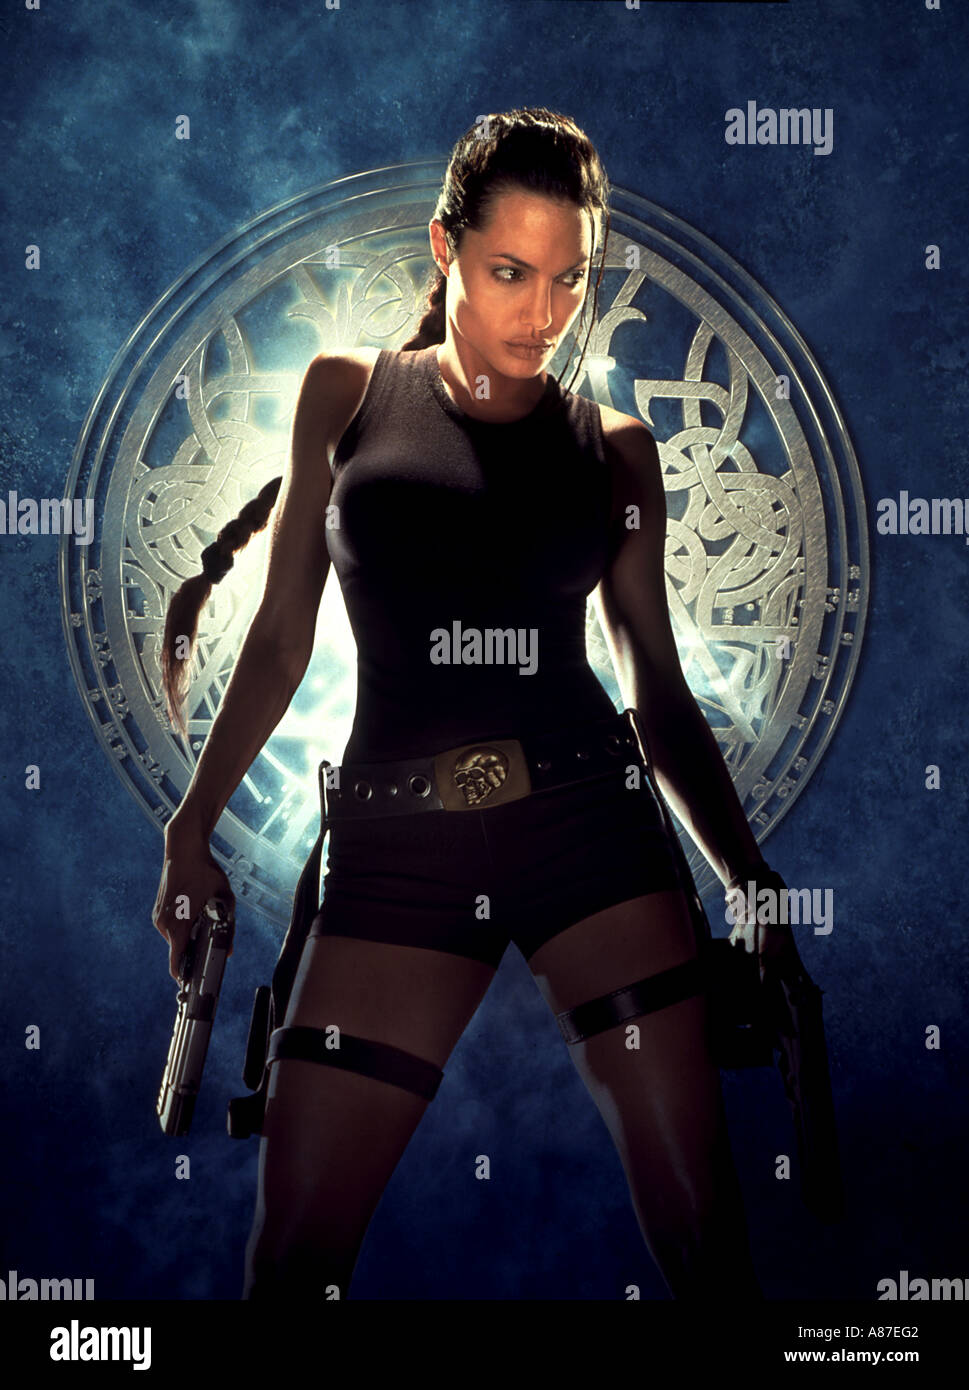 TOMB RAIDER 2003 UI film with Angelina Jolie - Stock Image